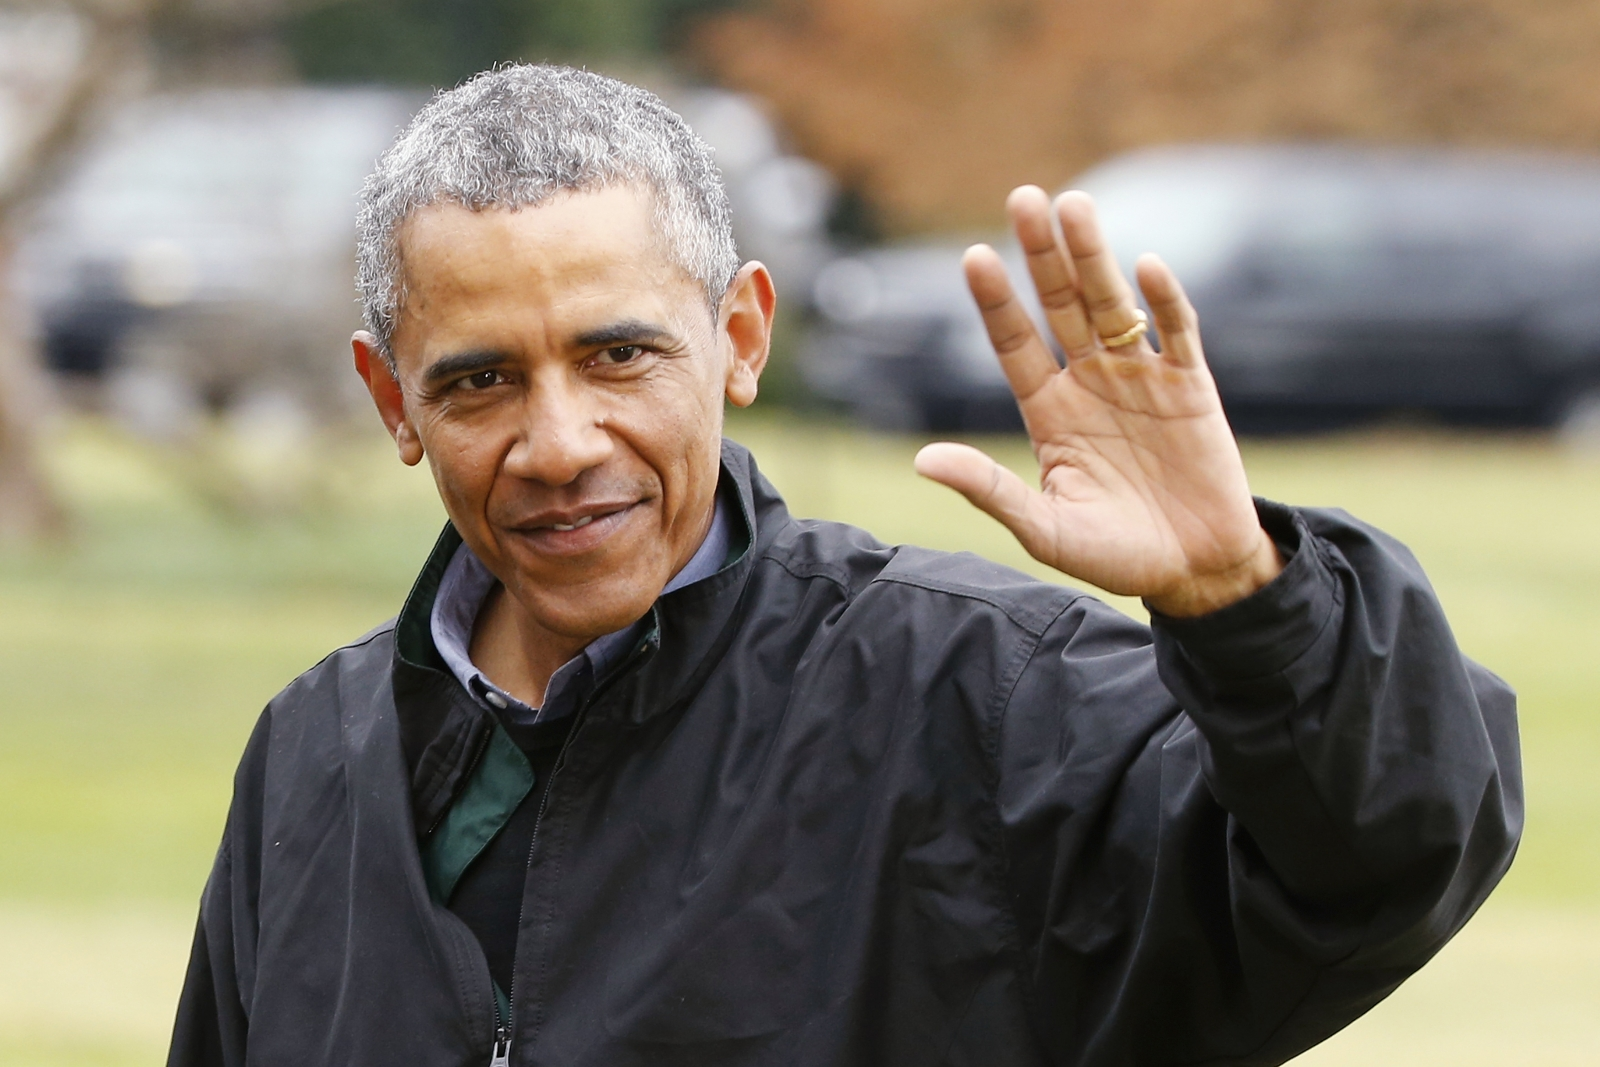 Former president barack obama receives rock star welcome - When is obama going to be out of office ...